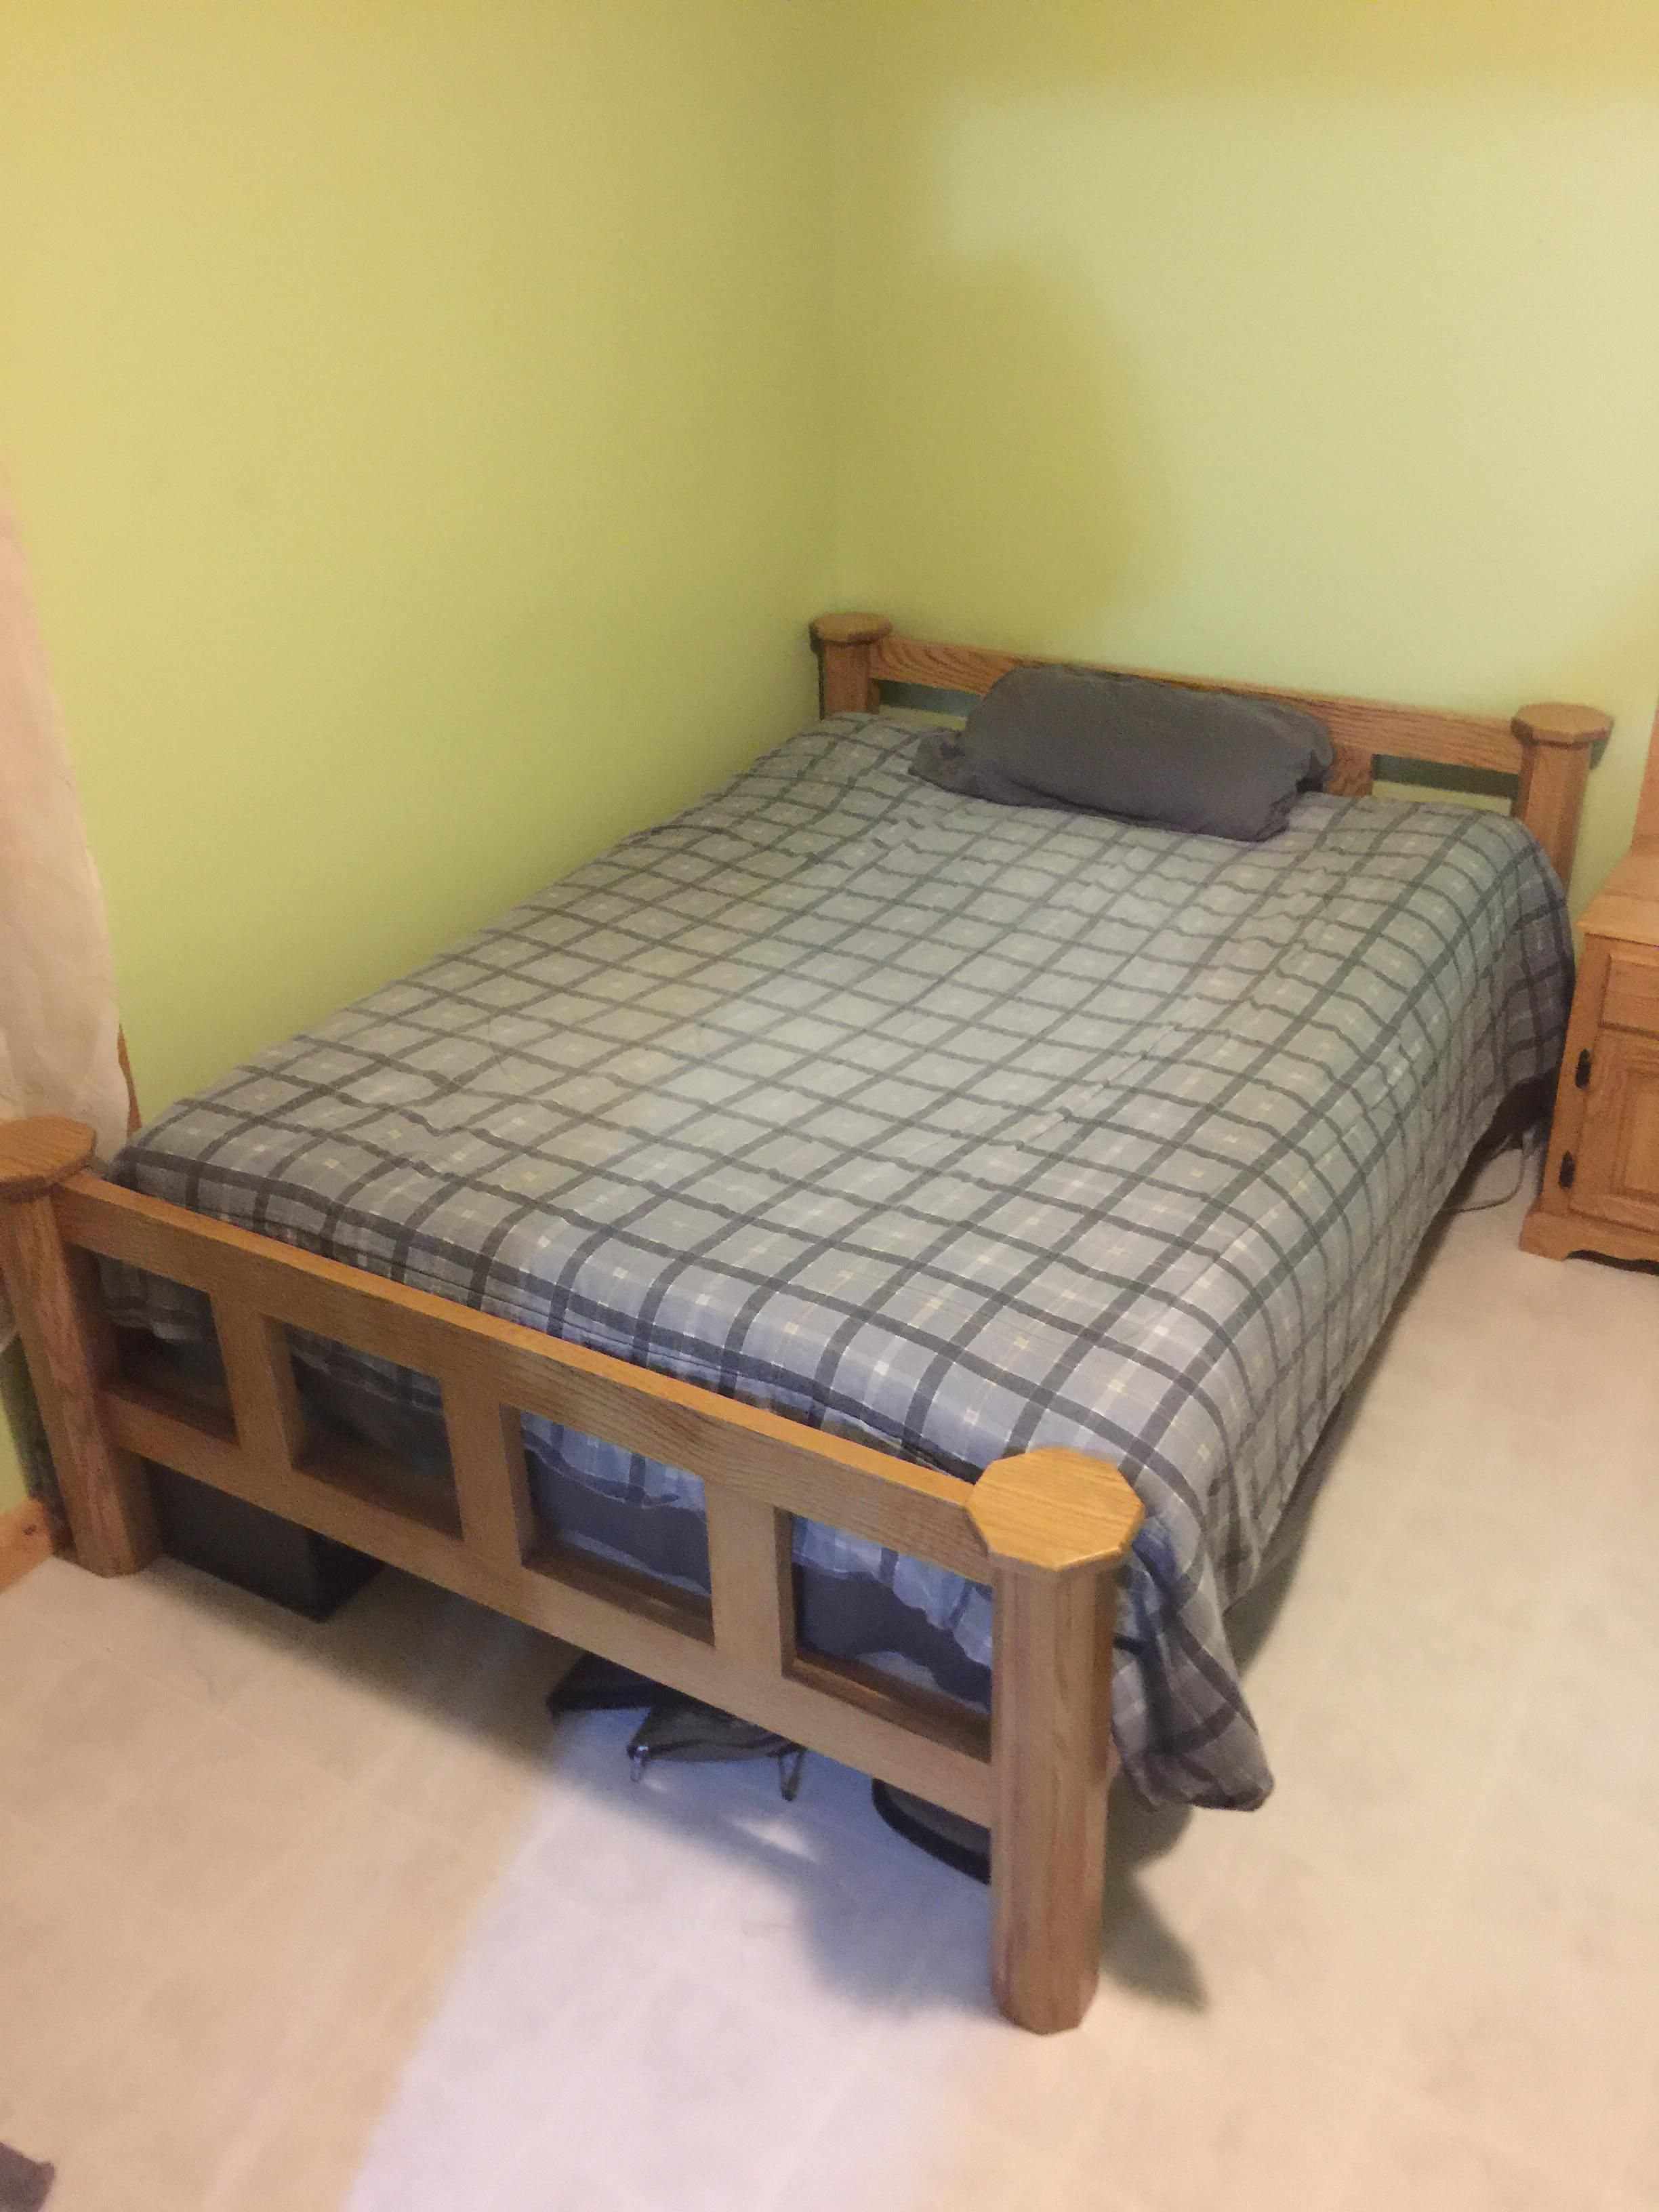 My Second Project A Red Oak Bed Frame To Finish My Bedroom Set Http Bit Ly 2xadrg9